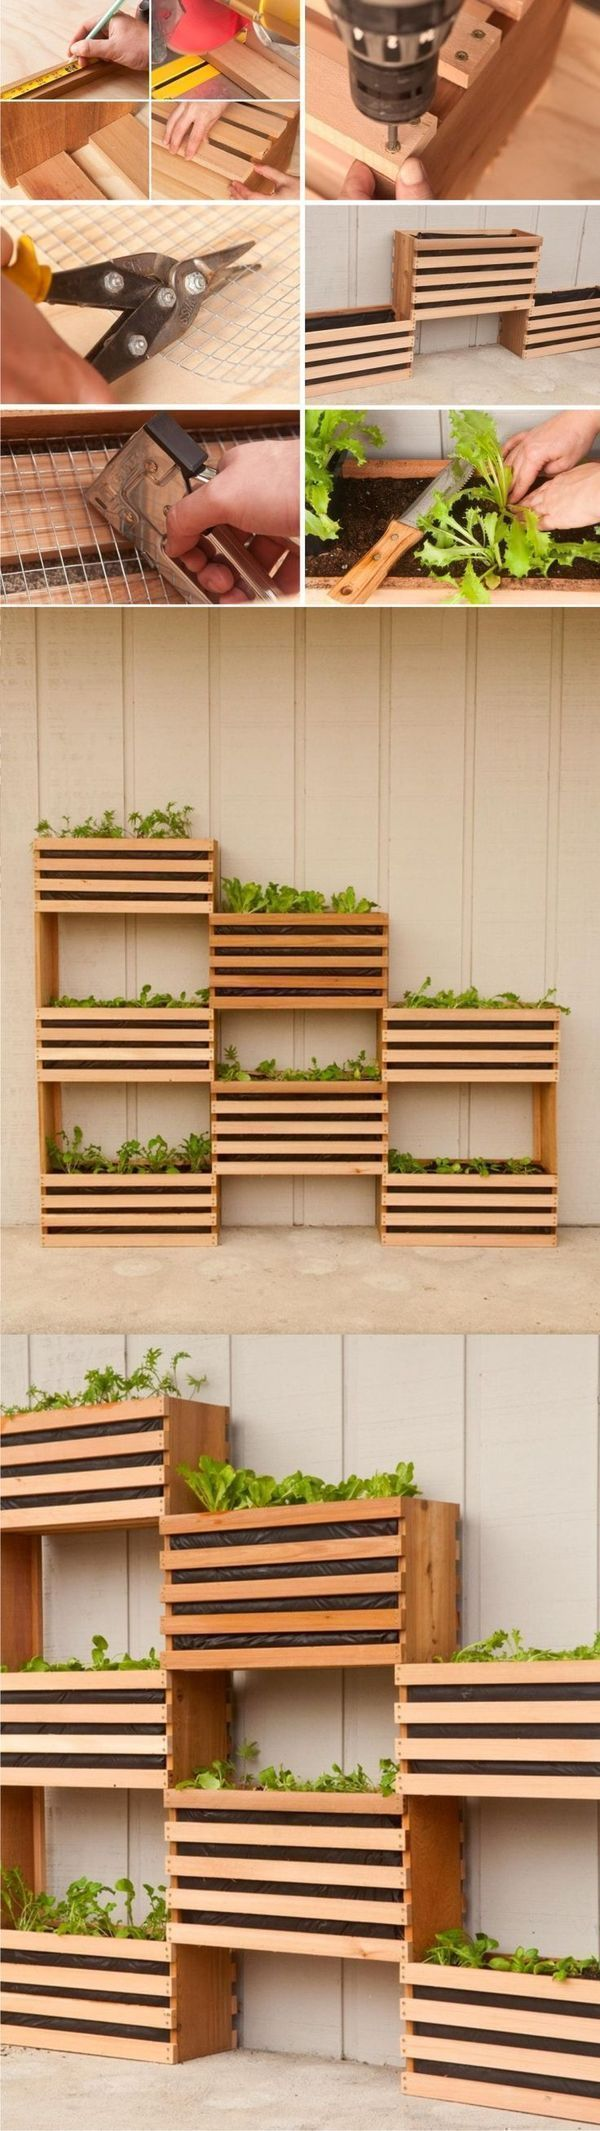 Excellent idea for indoor garden. Space-Saving Vertical Vegetable Garden #gardening on a budget #garden #budget #gardenforbeginnersonabudget #vegetablegardeningideasonabudget #indoorvegetablegardeningvertical #verticalgardens #indoorgardening #indoorvegetablegardeningideas